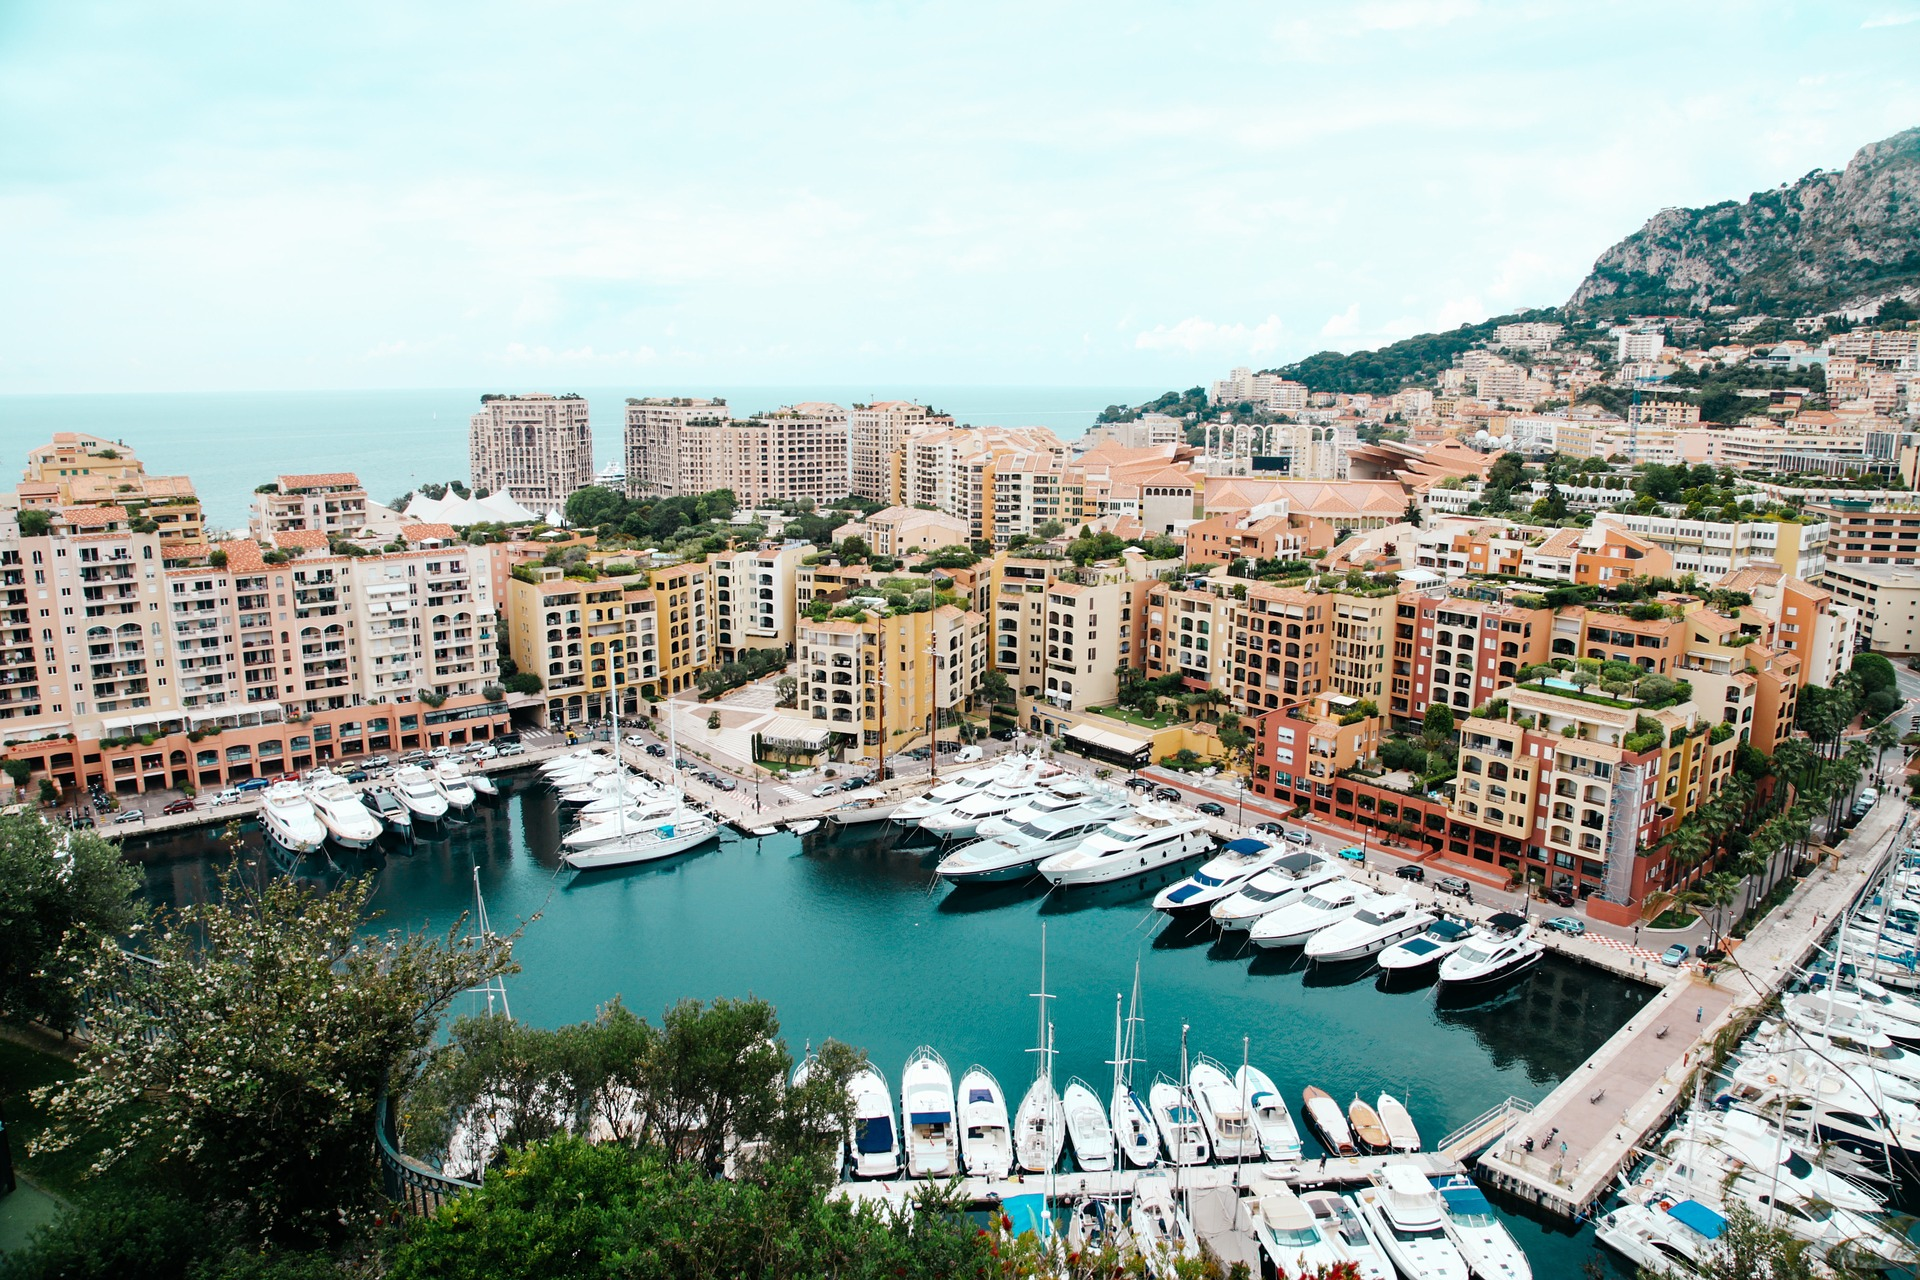 How to Spend 24 hours in Monaco